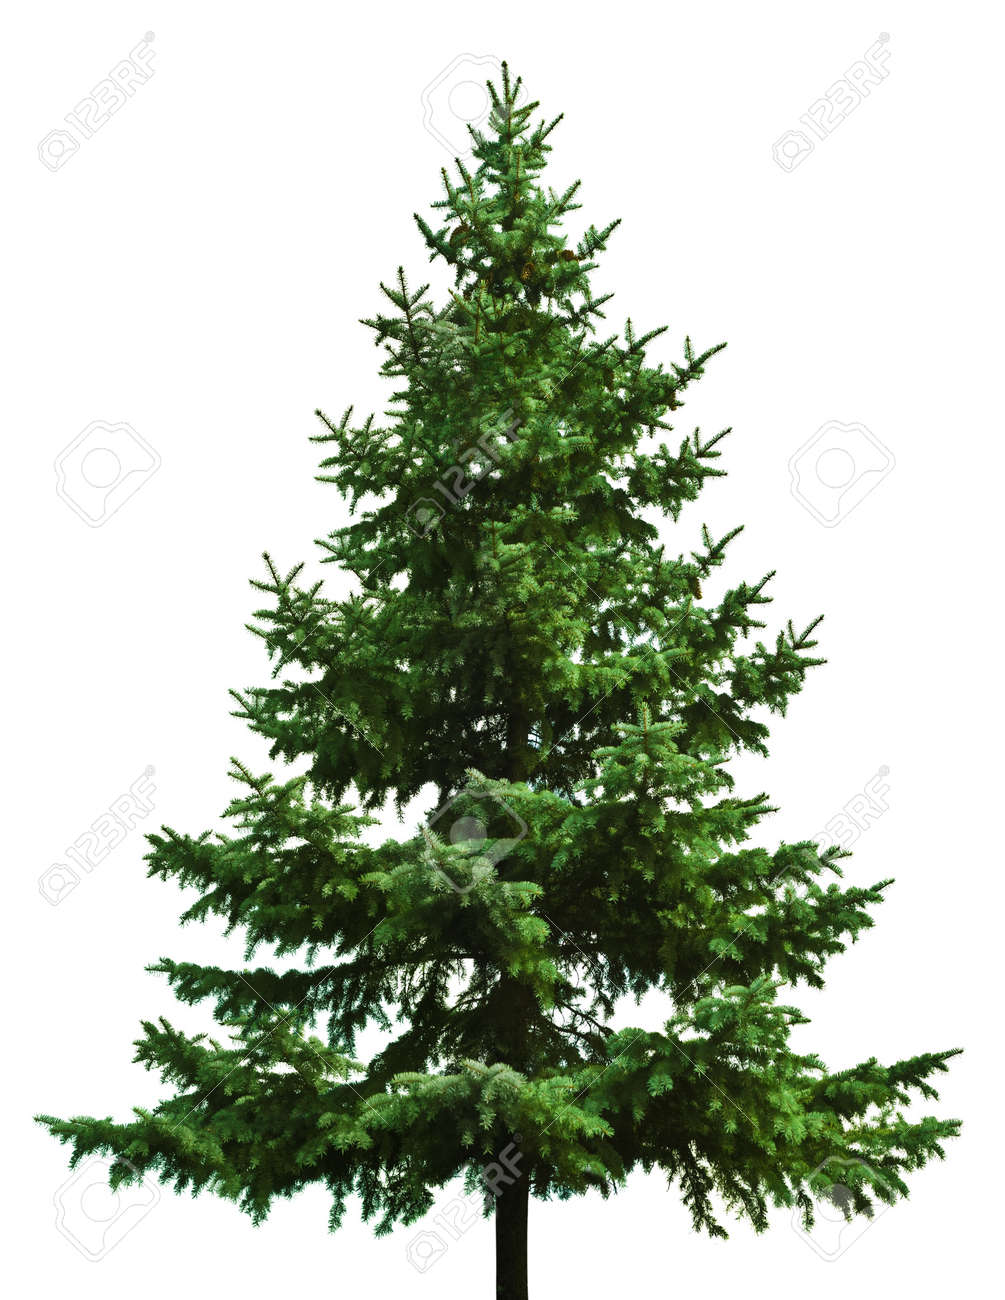 The Bare Christmas Tree Ready To Decorate Stock Photo Picture And